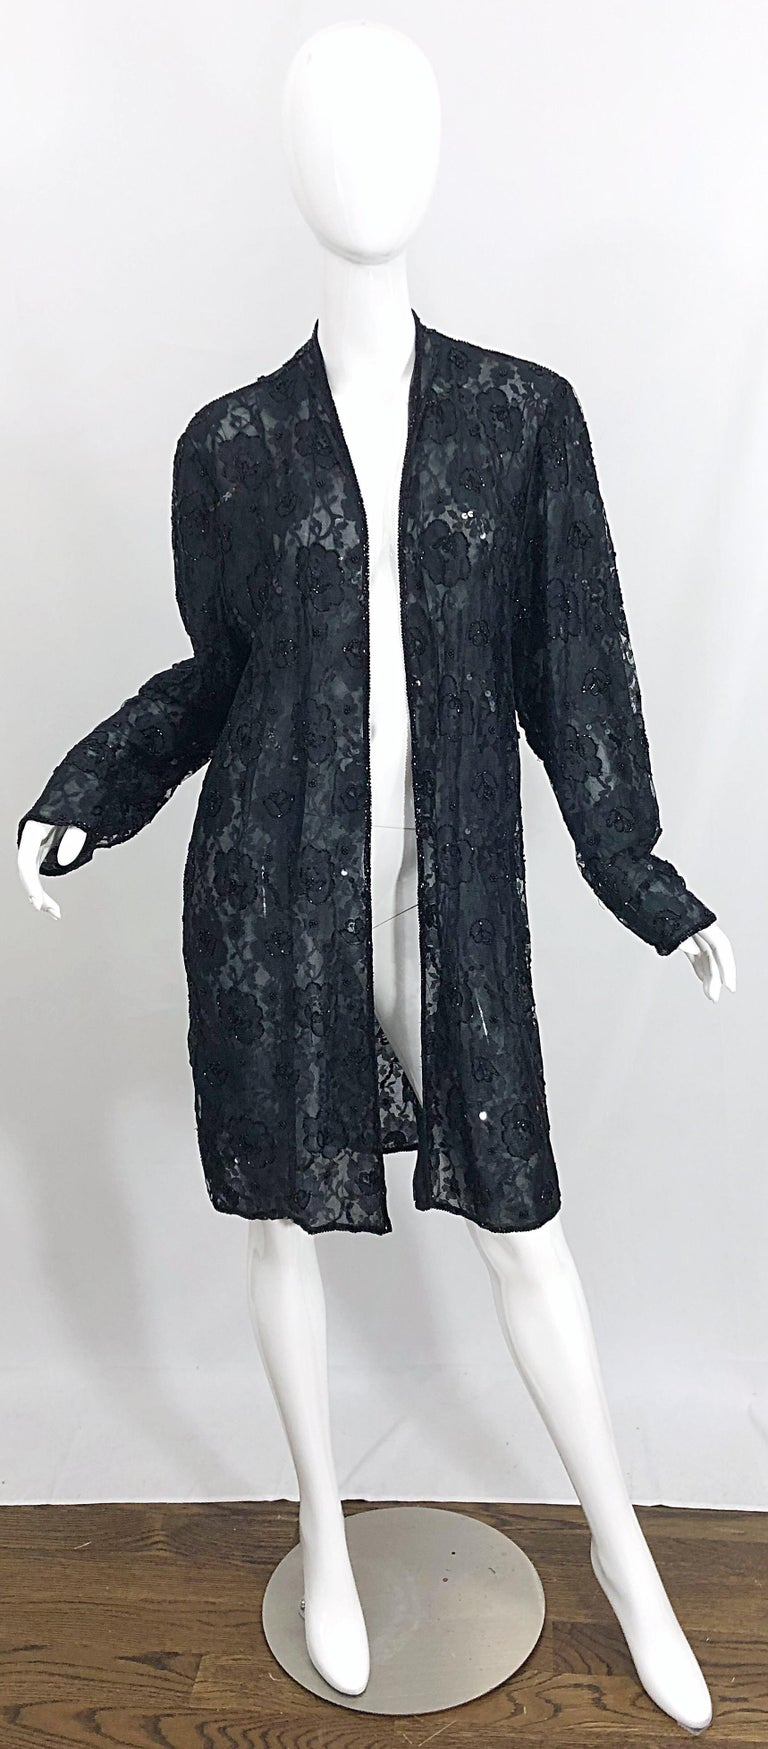 The perfect finishing piece! Beautiful vintage JUDITH ANN black rayon lace beaded sheer duster jacket / cardigan! Features a double-ply black sheer lace. Thousands of hand-sewn beads throughout. Great layering piece that can easily be dressed up or